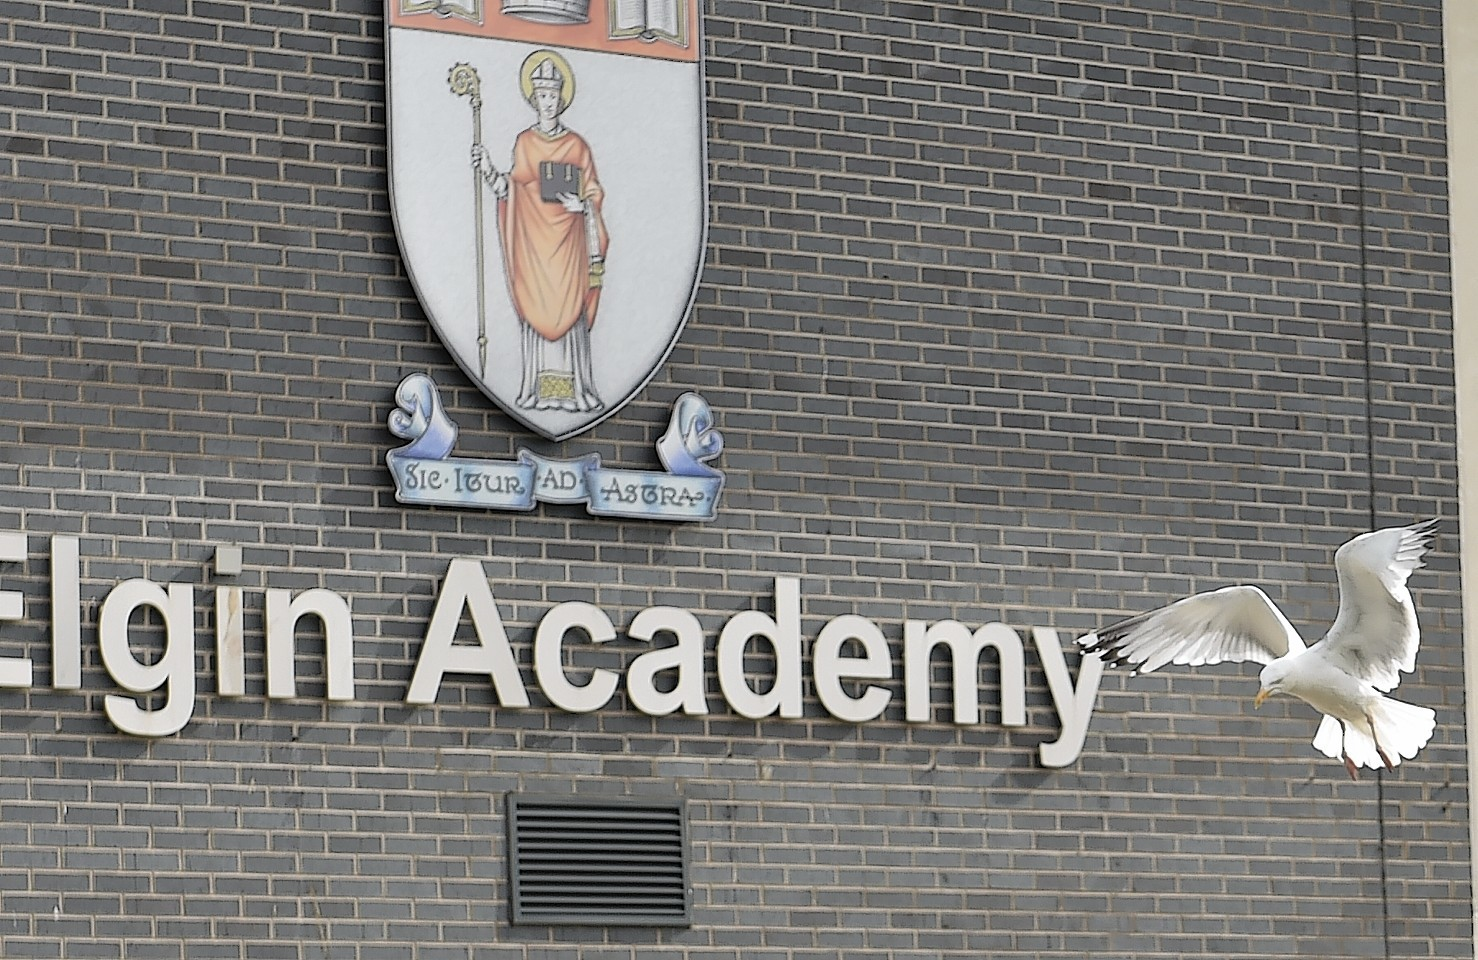 A gull flies in front of Elgin Academy. Picture by Gordon Lennox